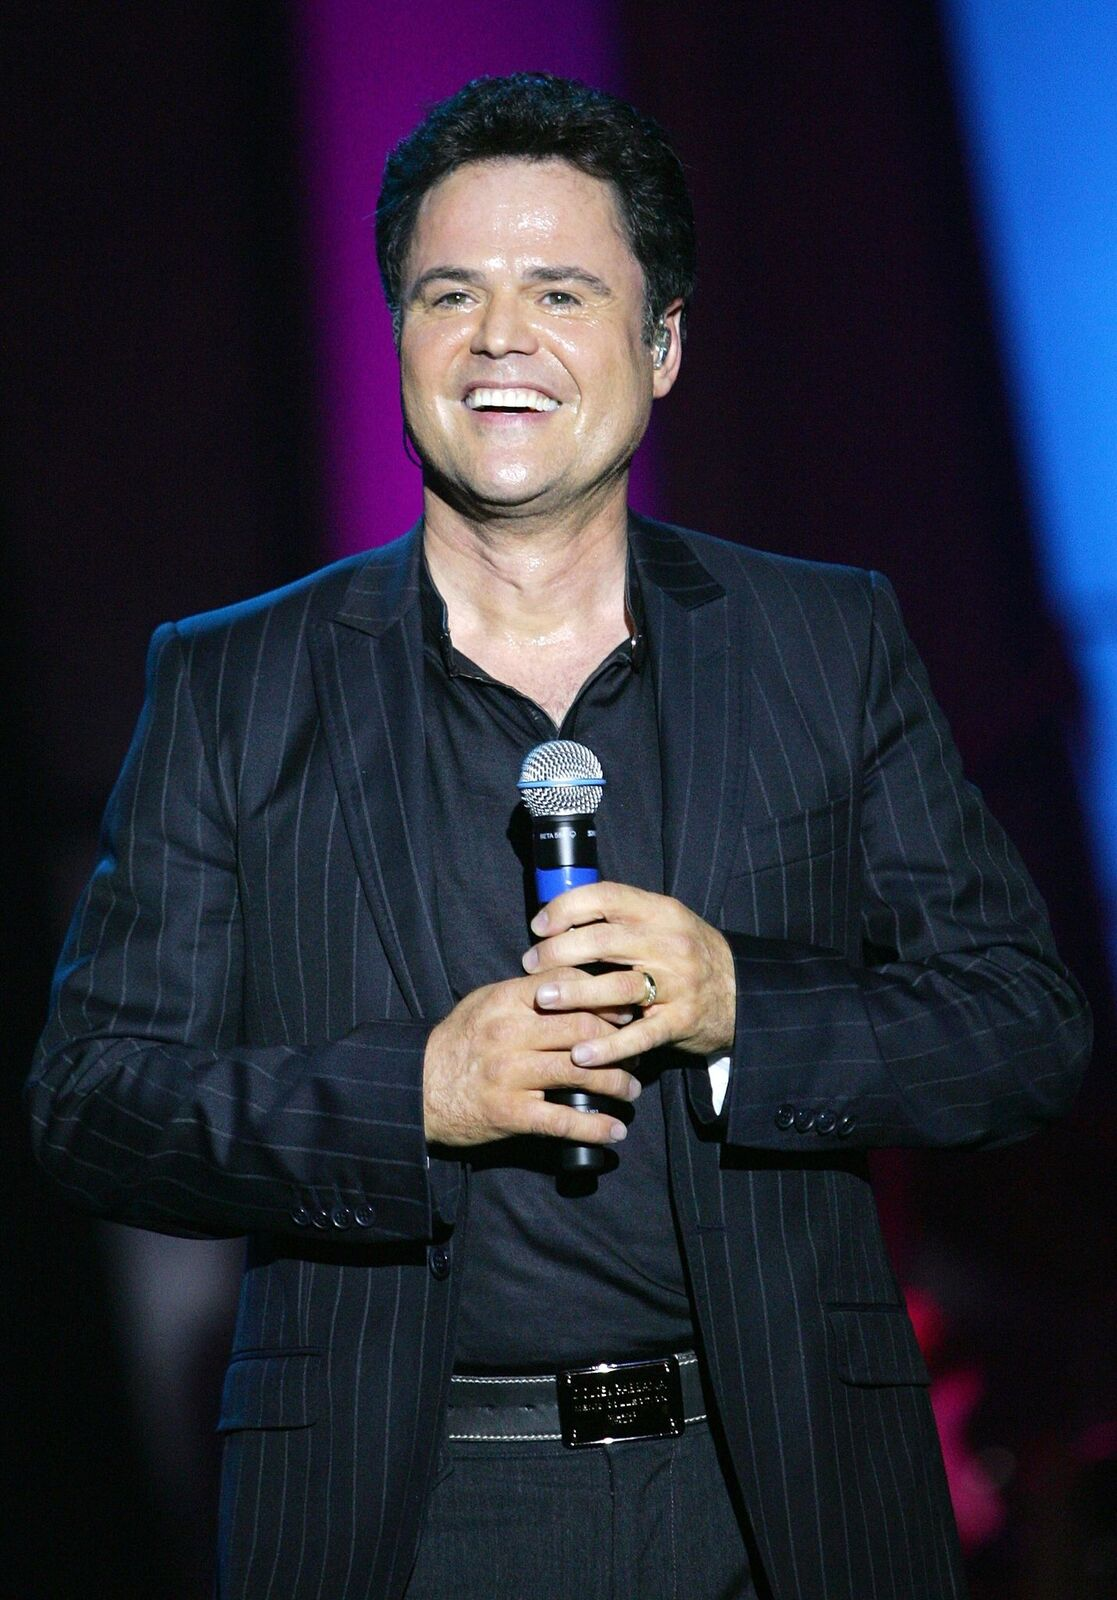 Donny Osmond performs at the Orleans Hotel & Casino on August 14, 2007, in Las Vegas, Nevada   Photo: Ethan Miller/Getty Images